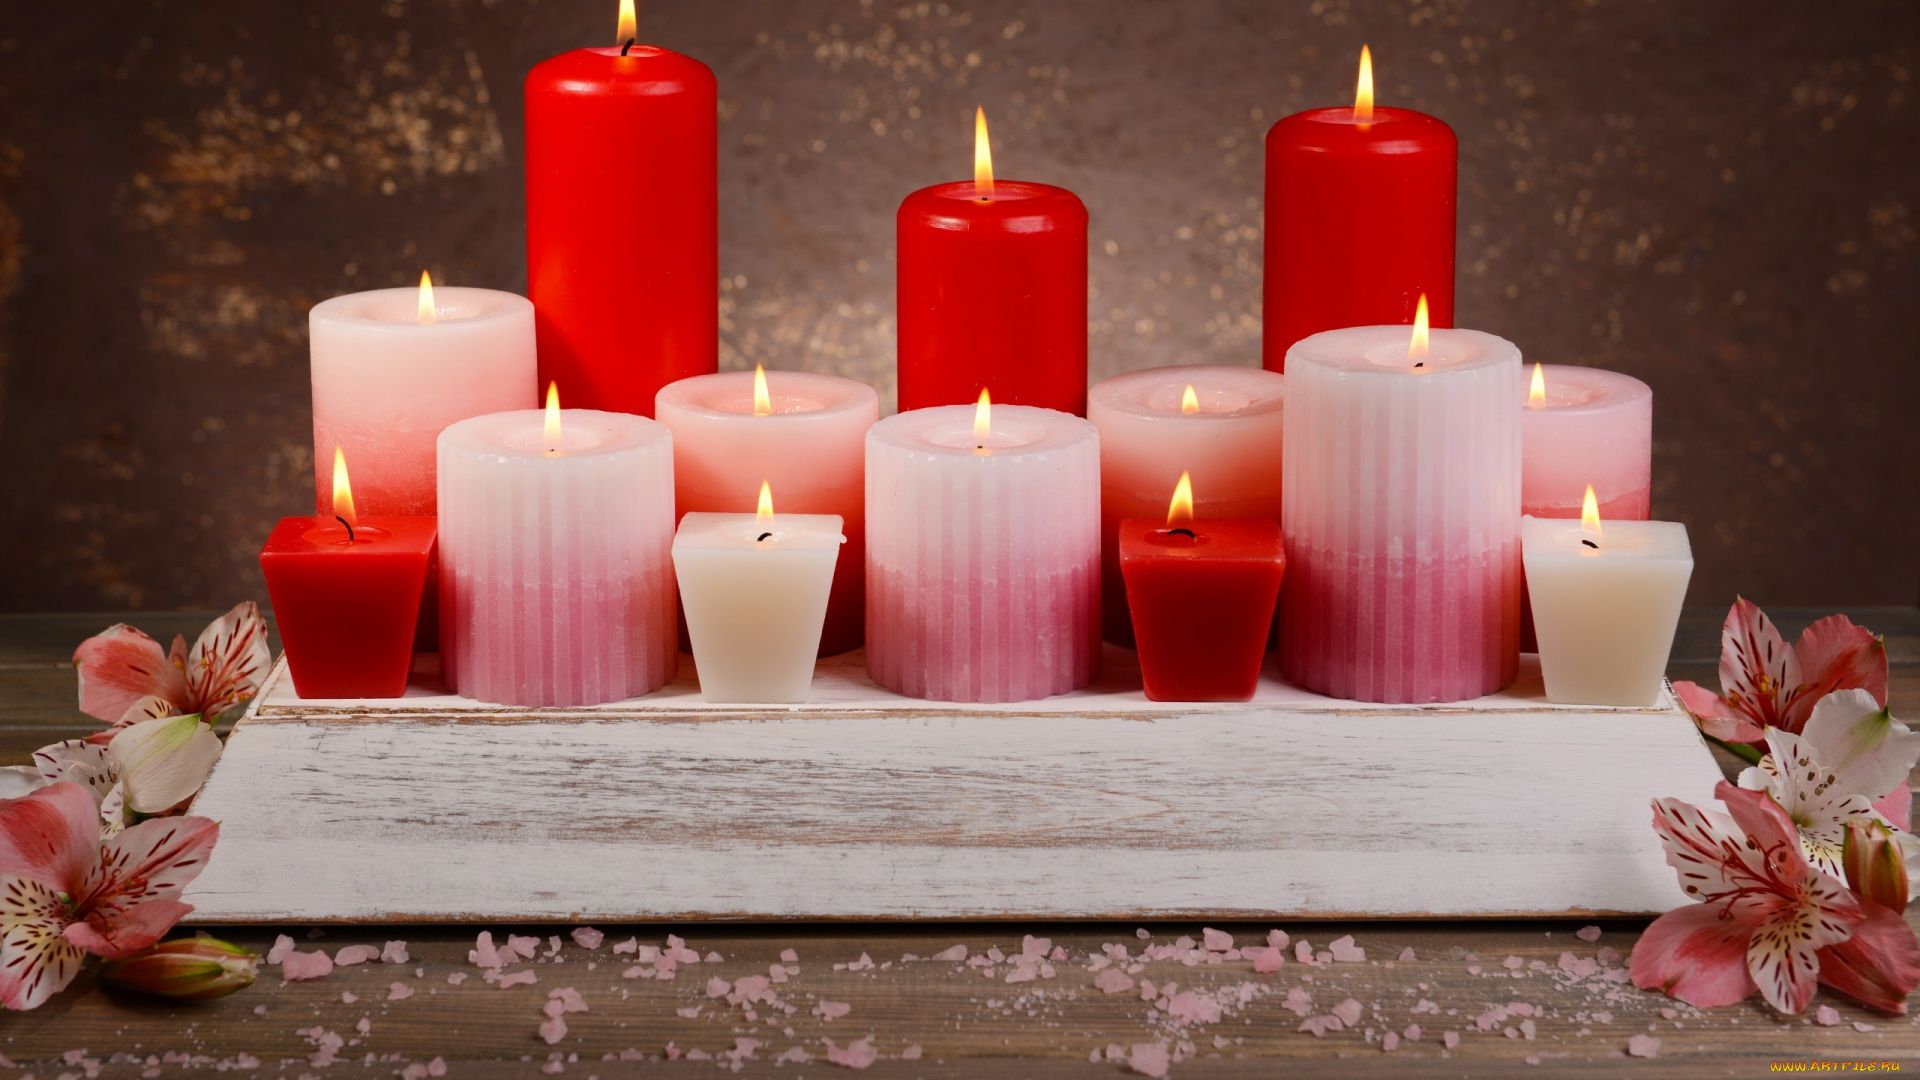 Candle wallpaper picture hd